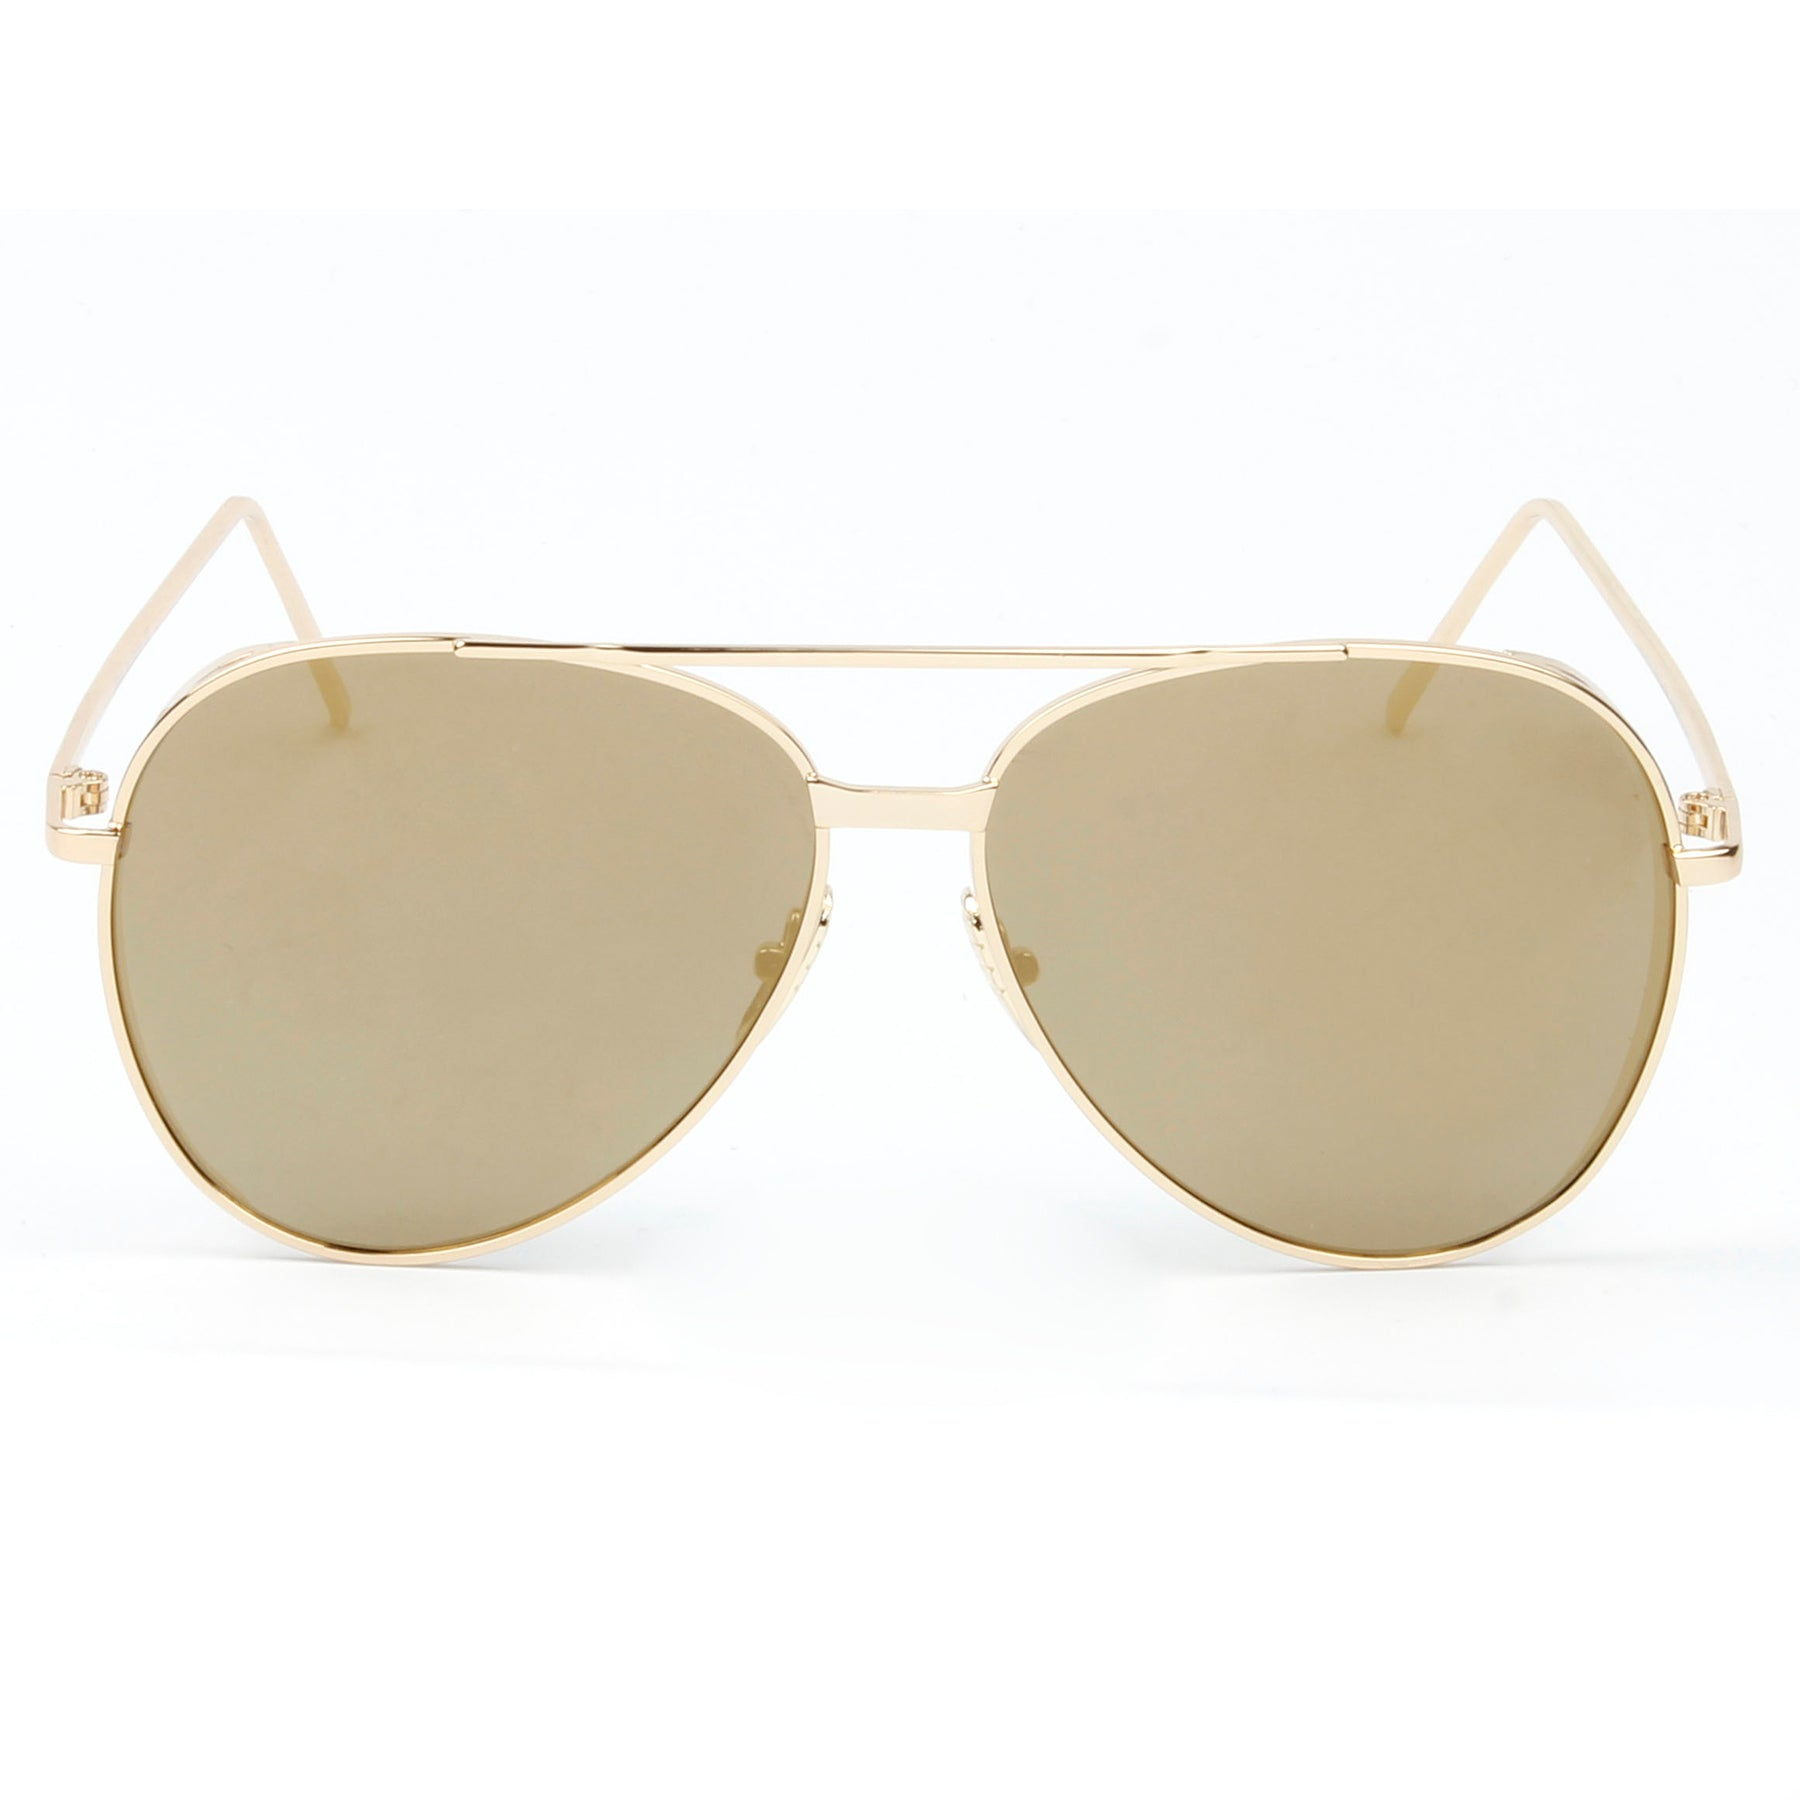 RECIFE SUNGLASS IN GOLD WITH BROWN LENSES